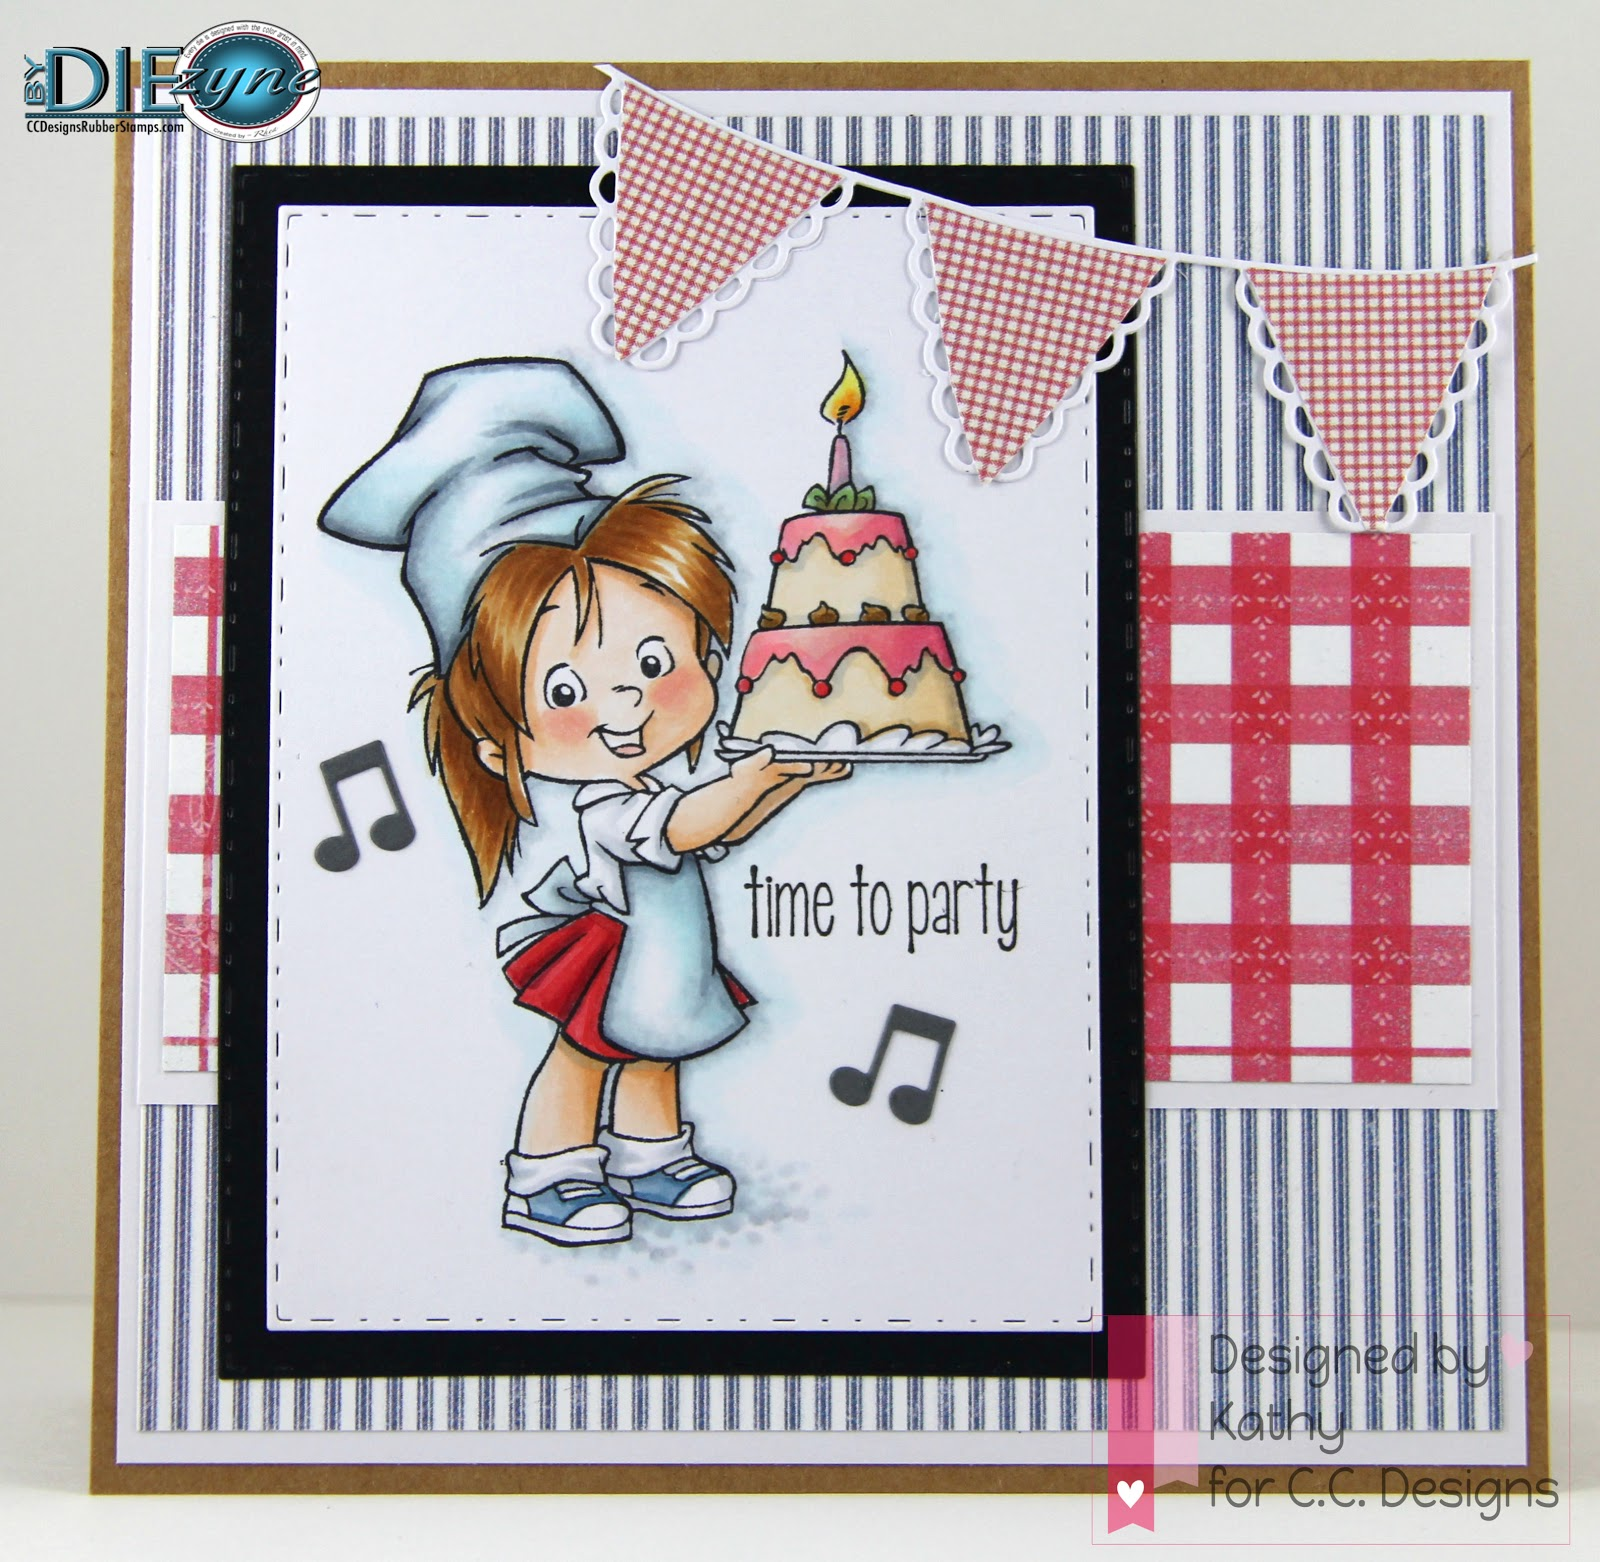 cc designs, Baker Nancy, pierced rectangles die, HB2U sentiments